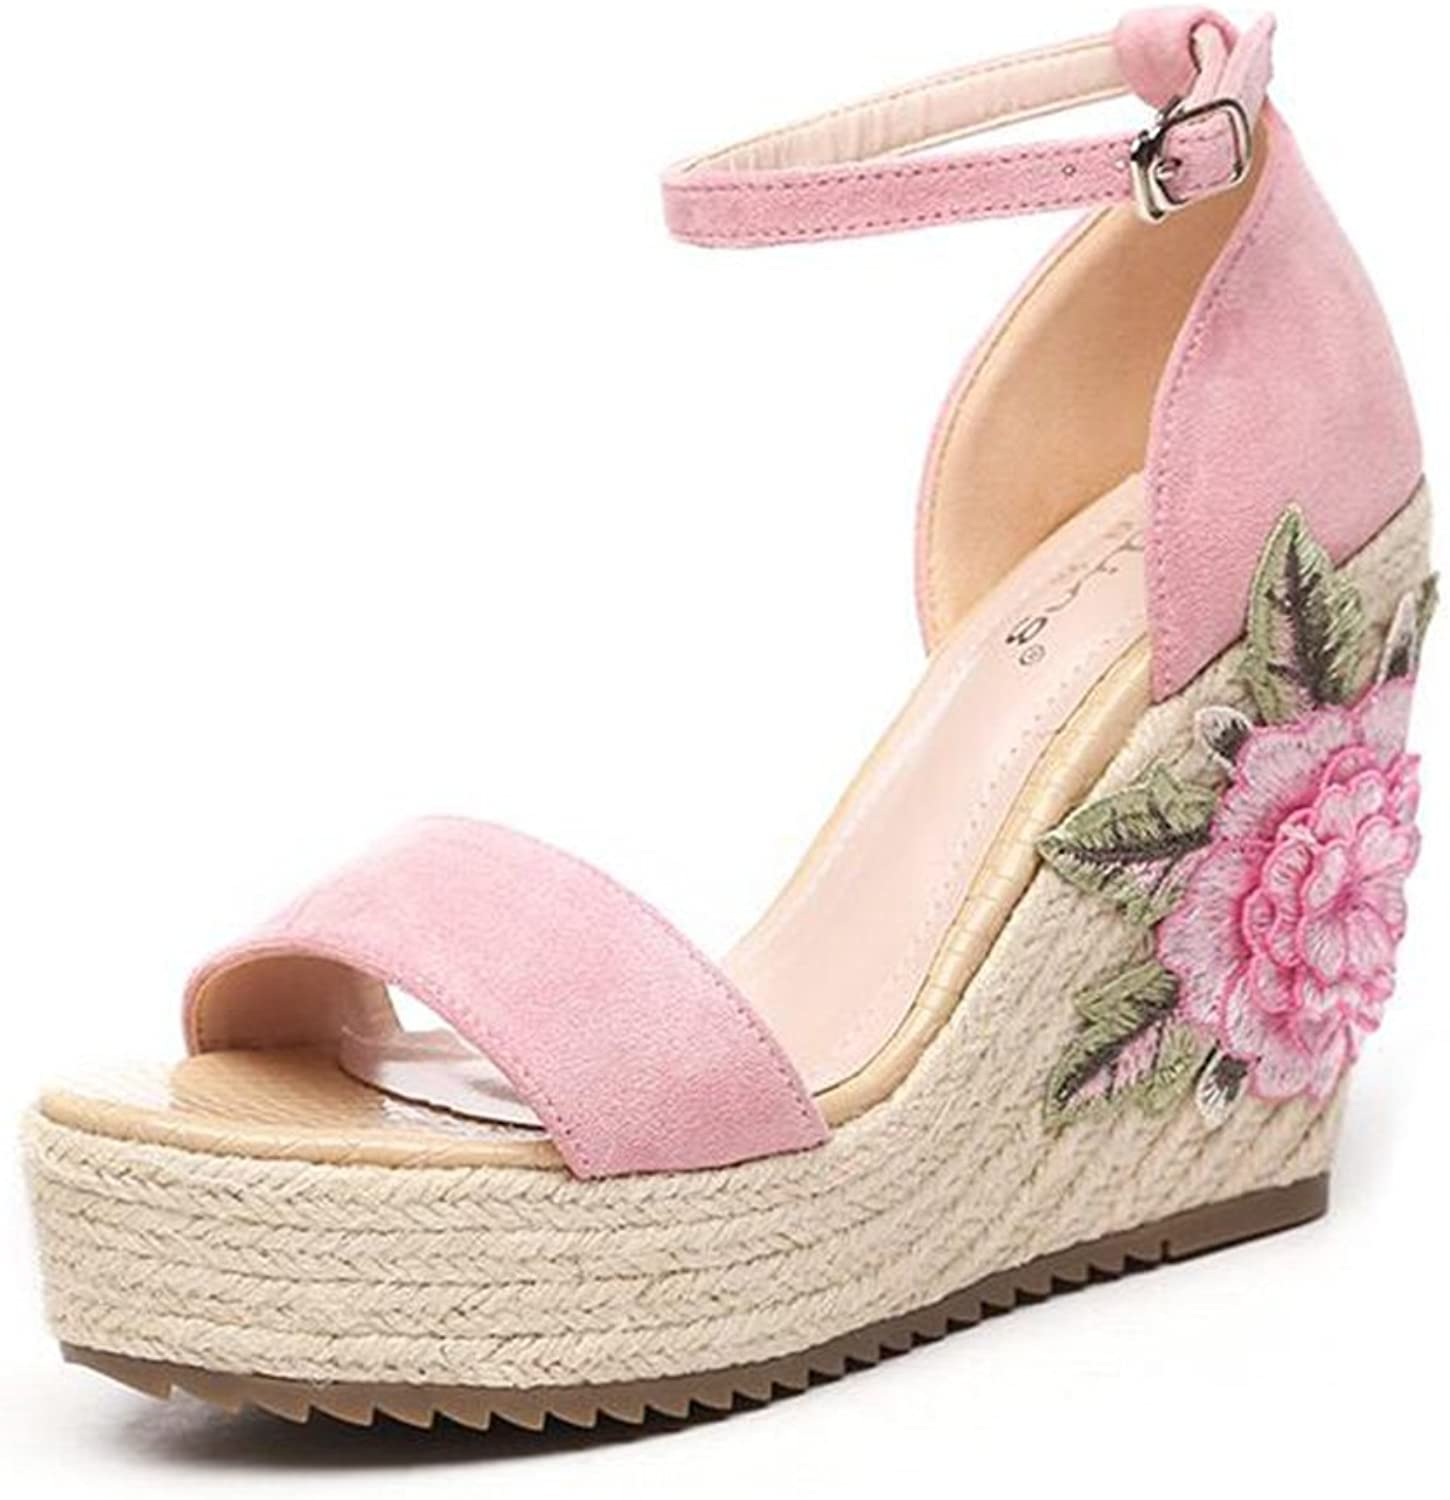 Jinsen Summer shoes Ethnic Style Slope Sandals Bohemia Flowers Embroidery Women's shoes